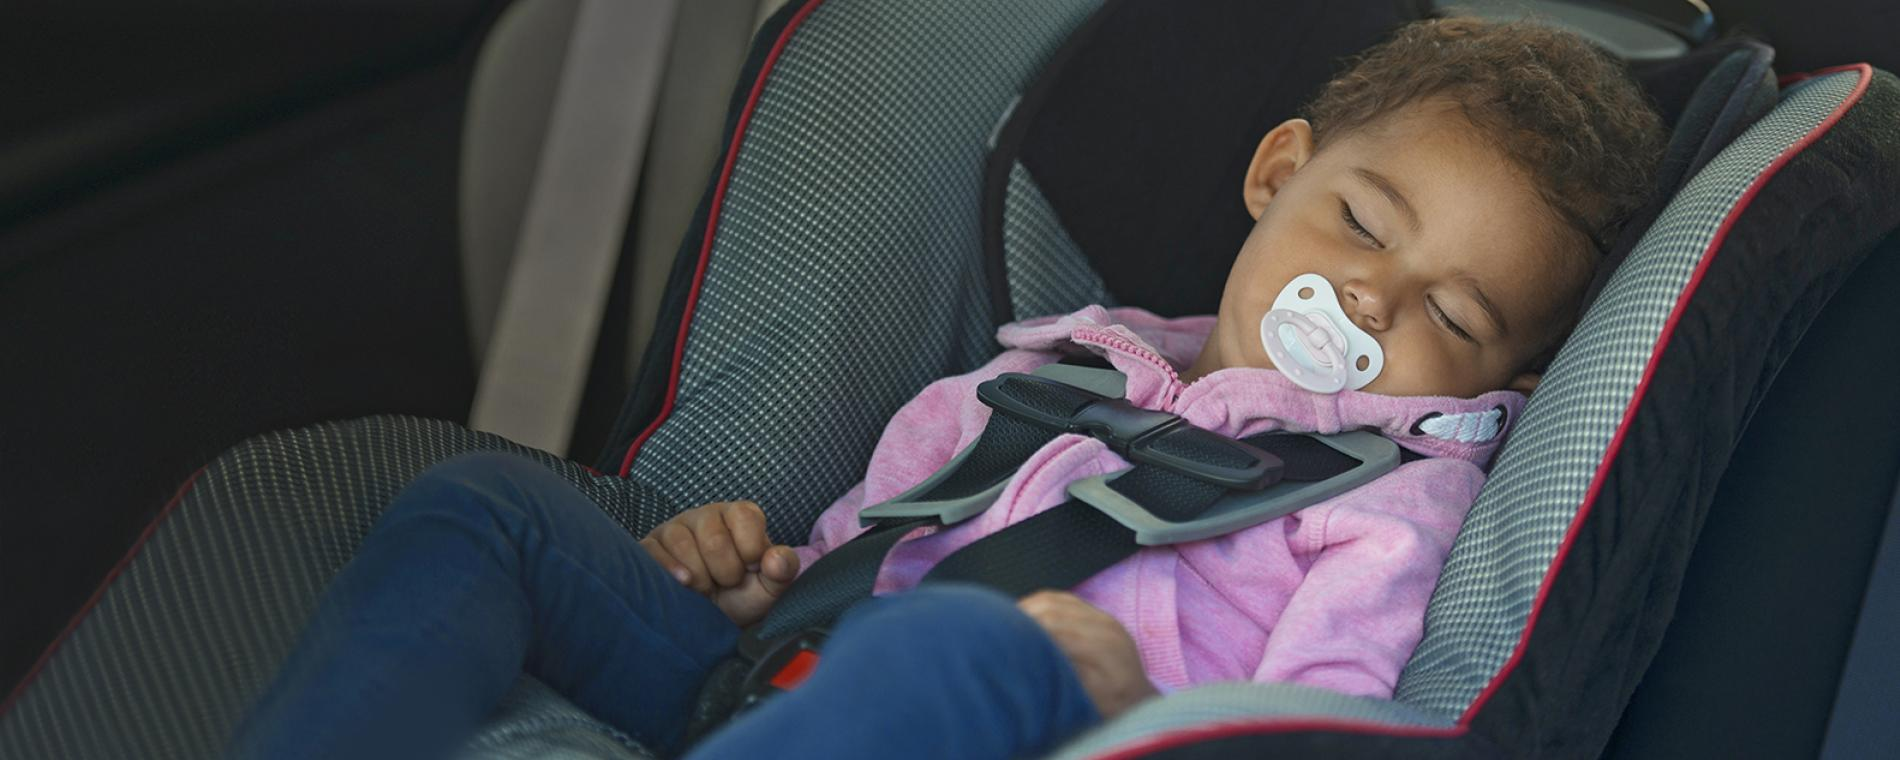 Help prevent pediatric vehicular heatstroke with these tips.